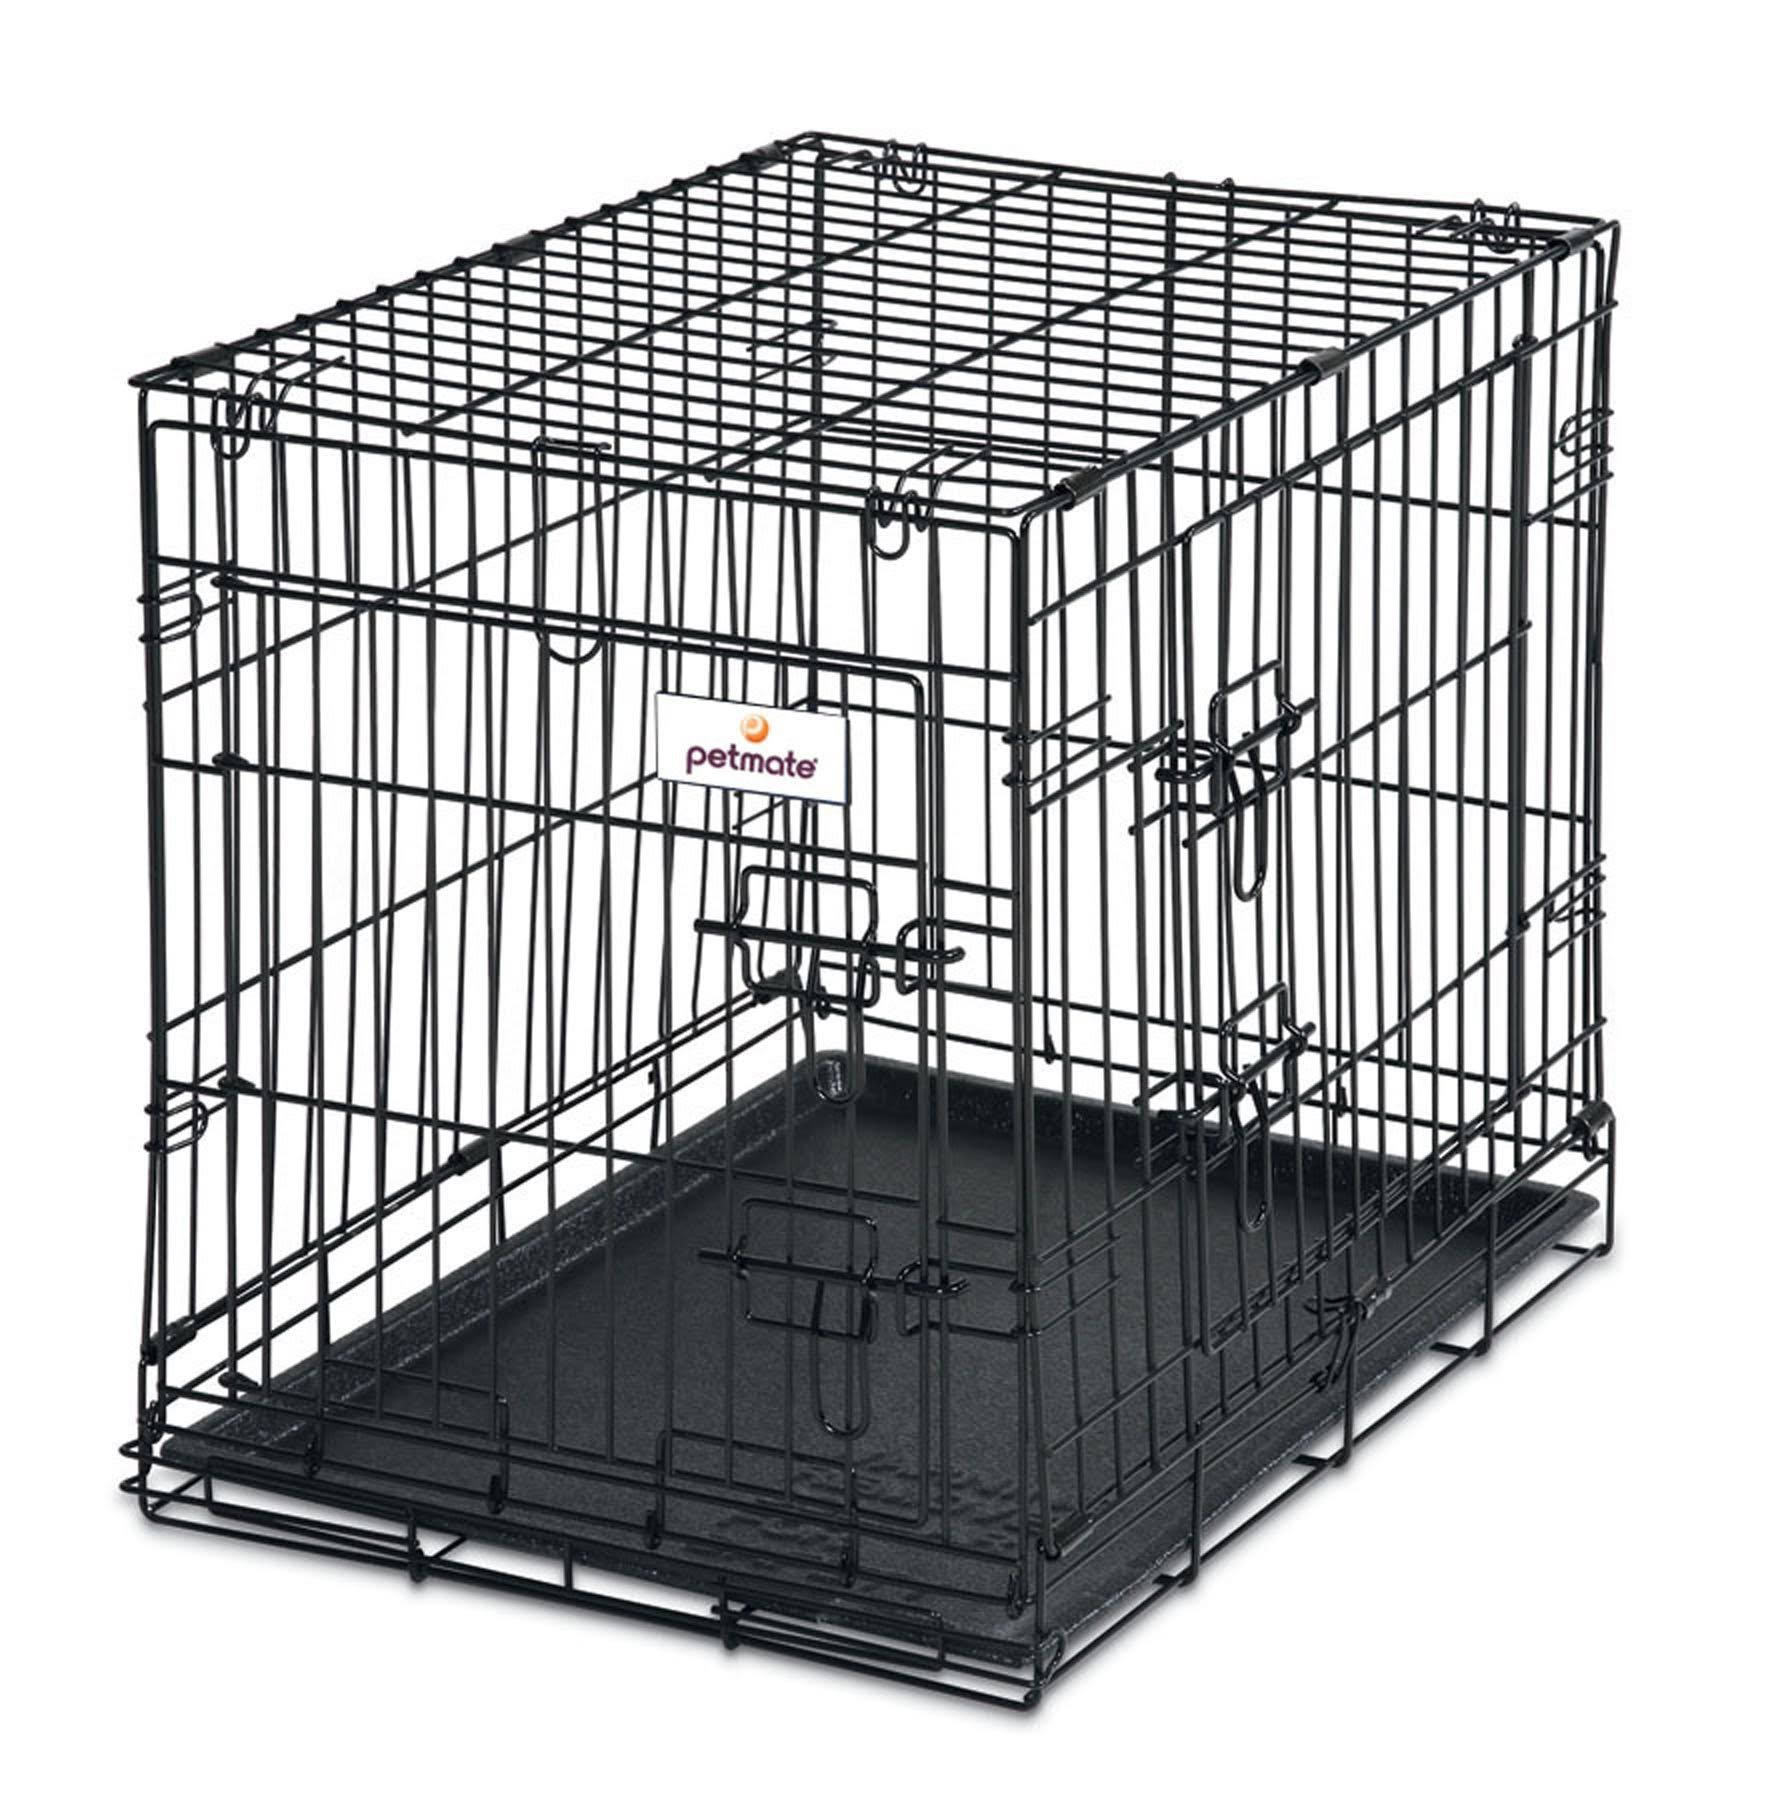 Petmate 2-Door Training Retreats Wire Kennel for Dogs - 25-30lb, 24""